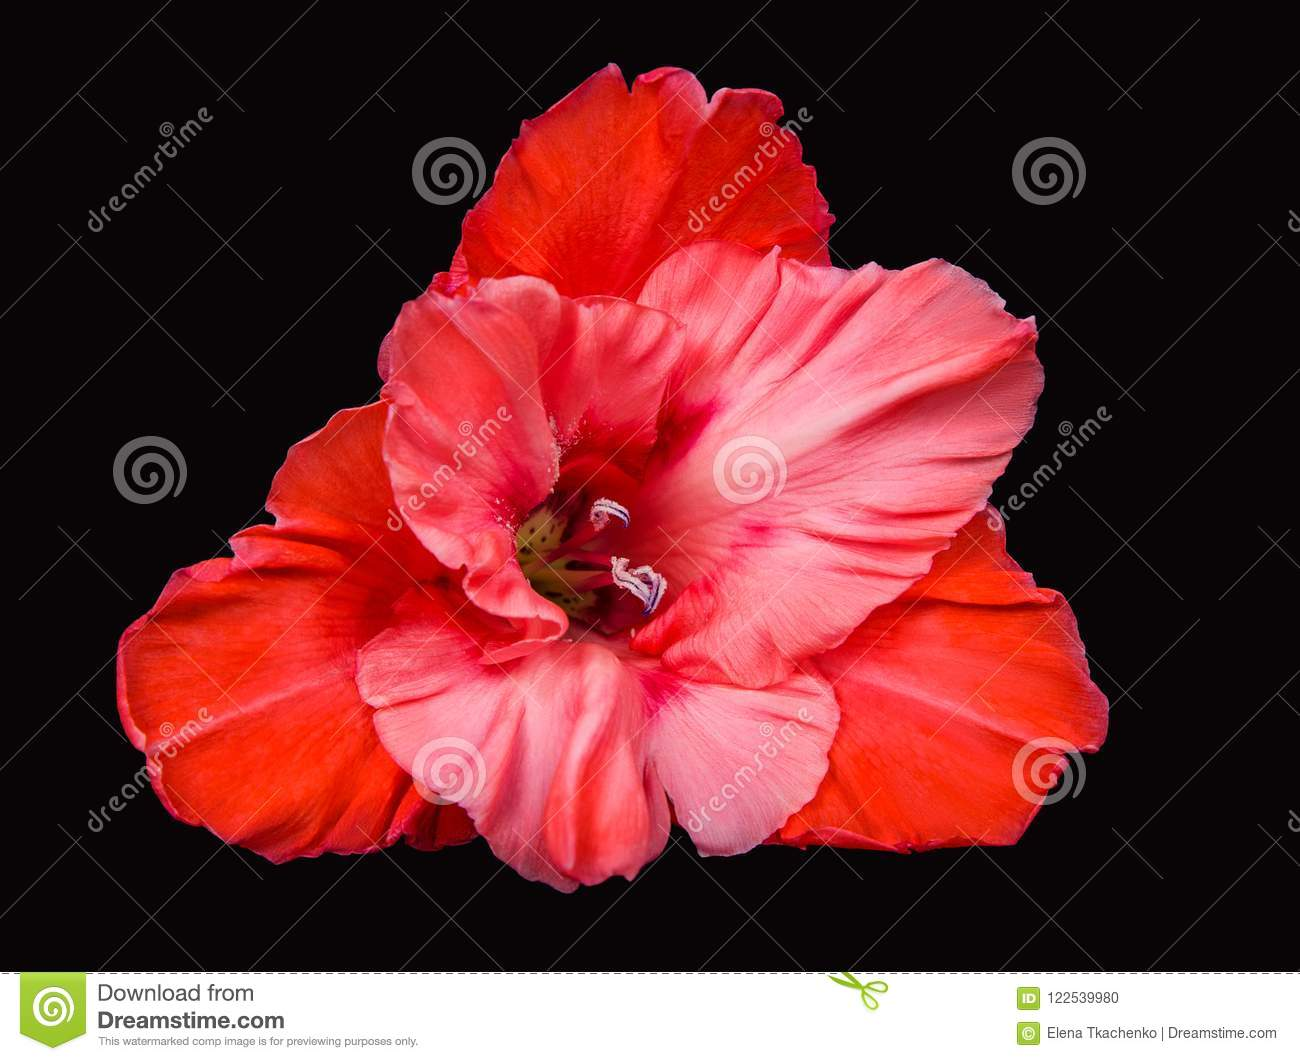 Bright Red Coral Gladiolus Flower On A Black Background Stock Photo